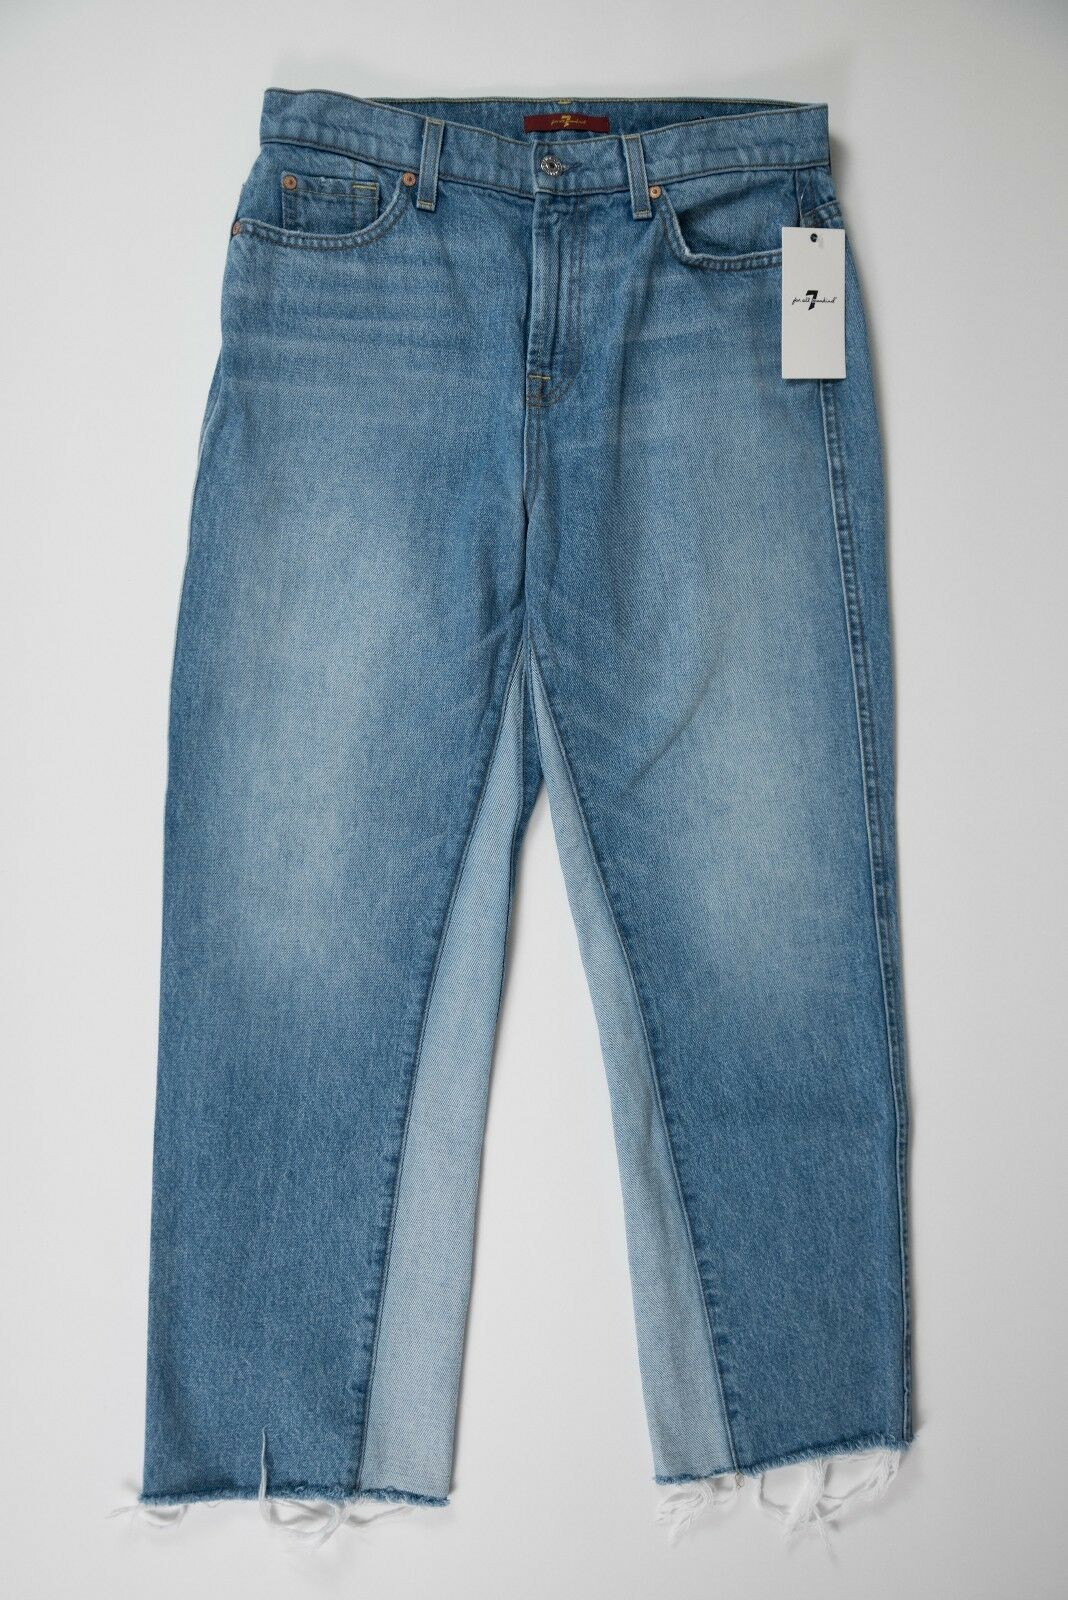 7 SEVEN FOR ALL MANKIND Two Tone Vented Cuff Flare Crop Jeans - size 28